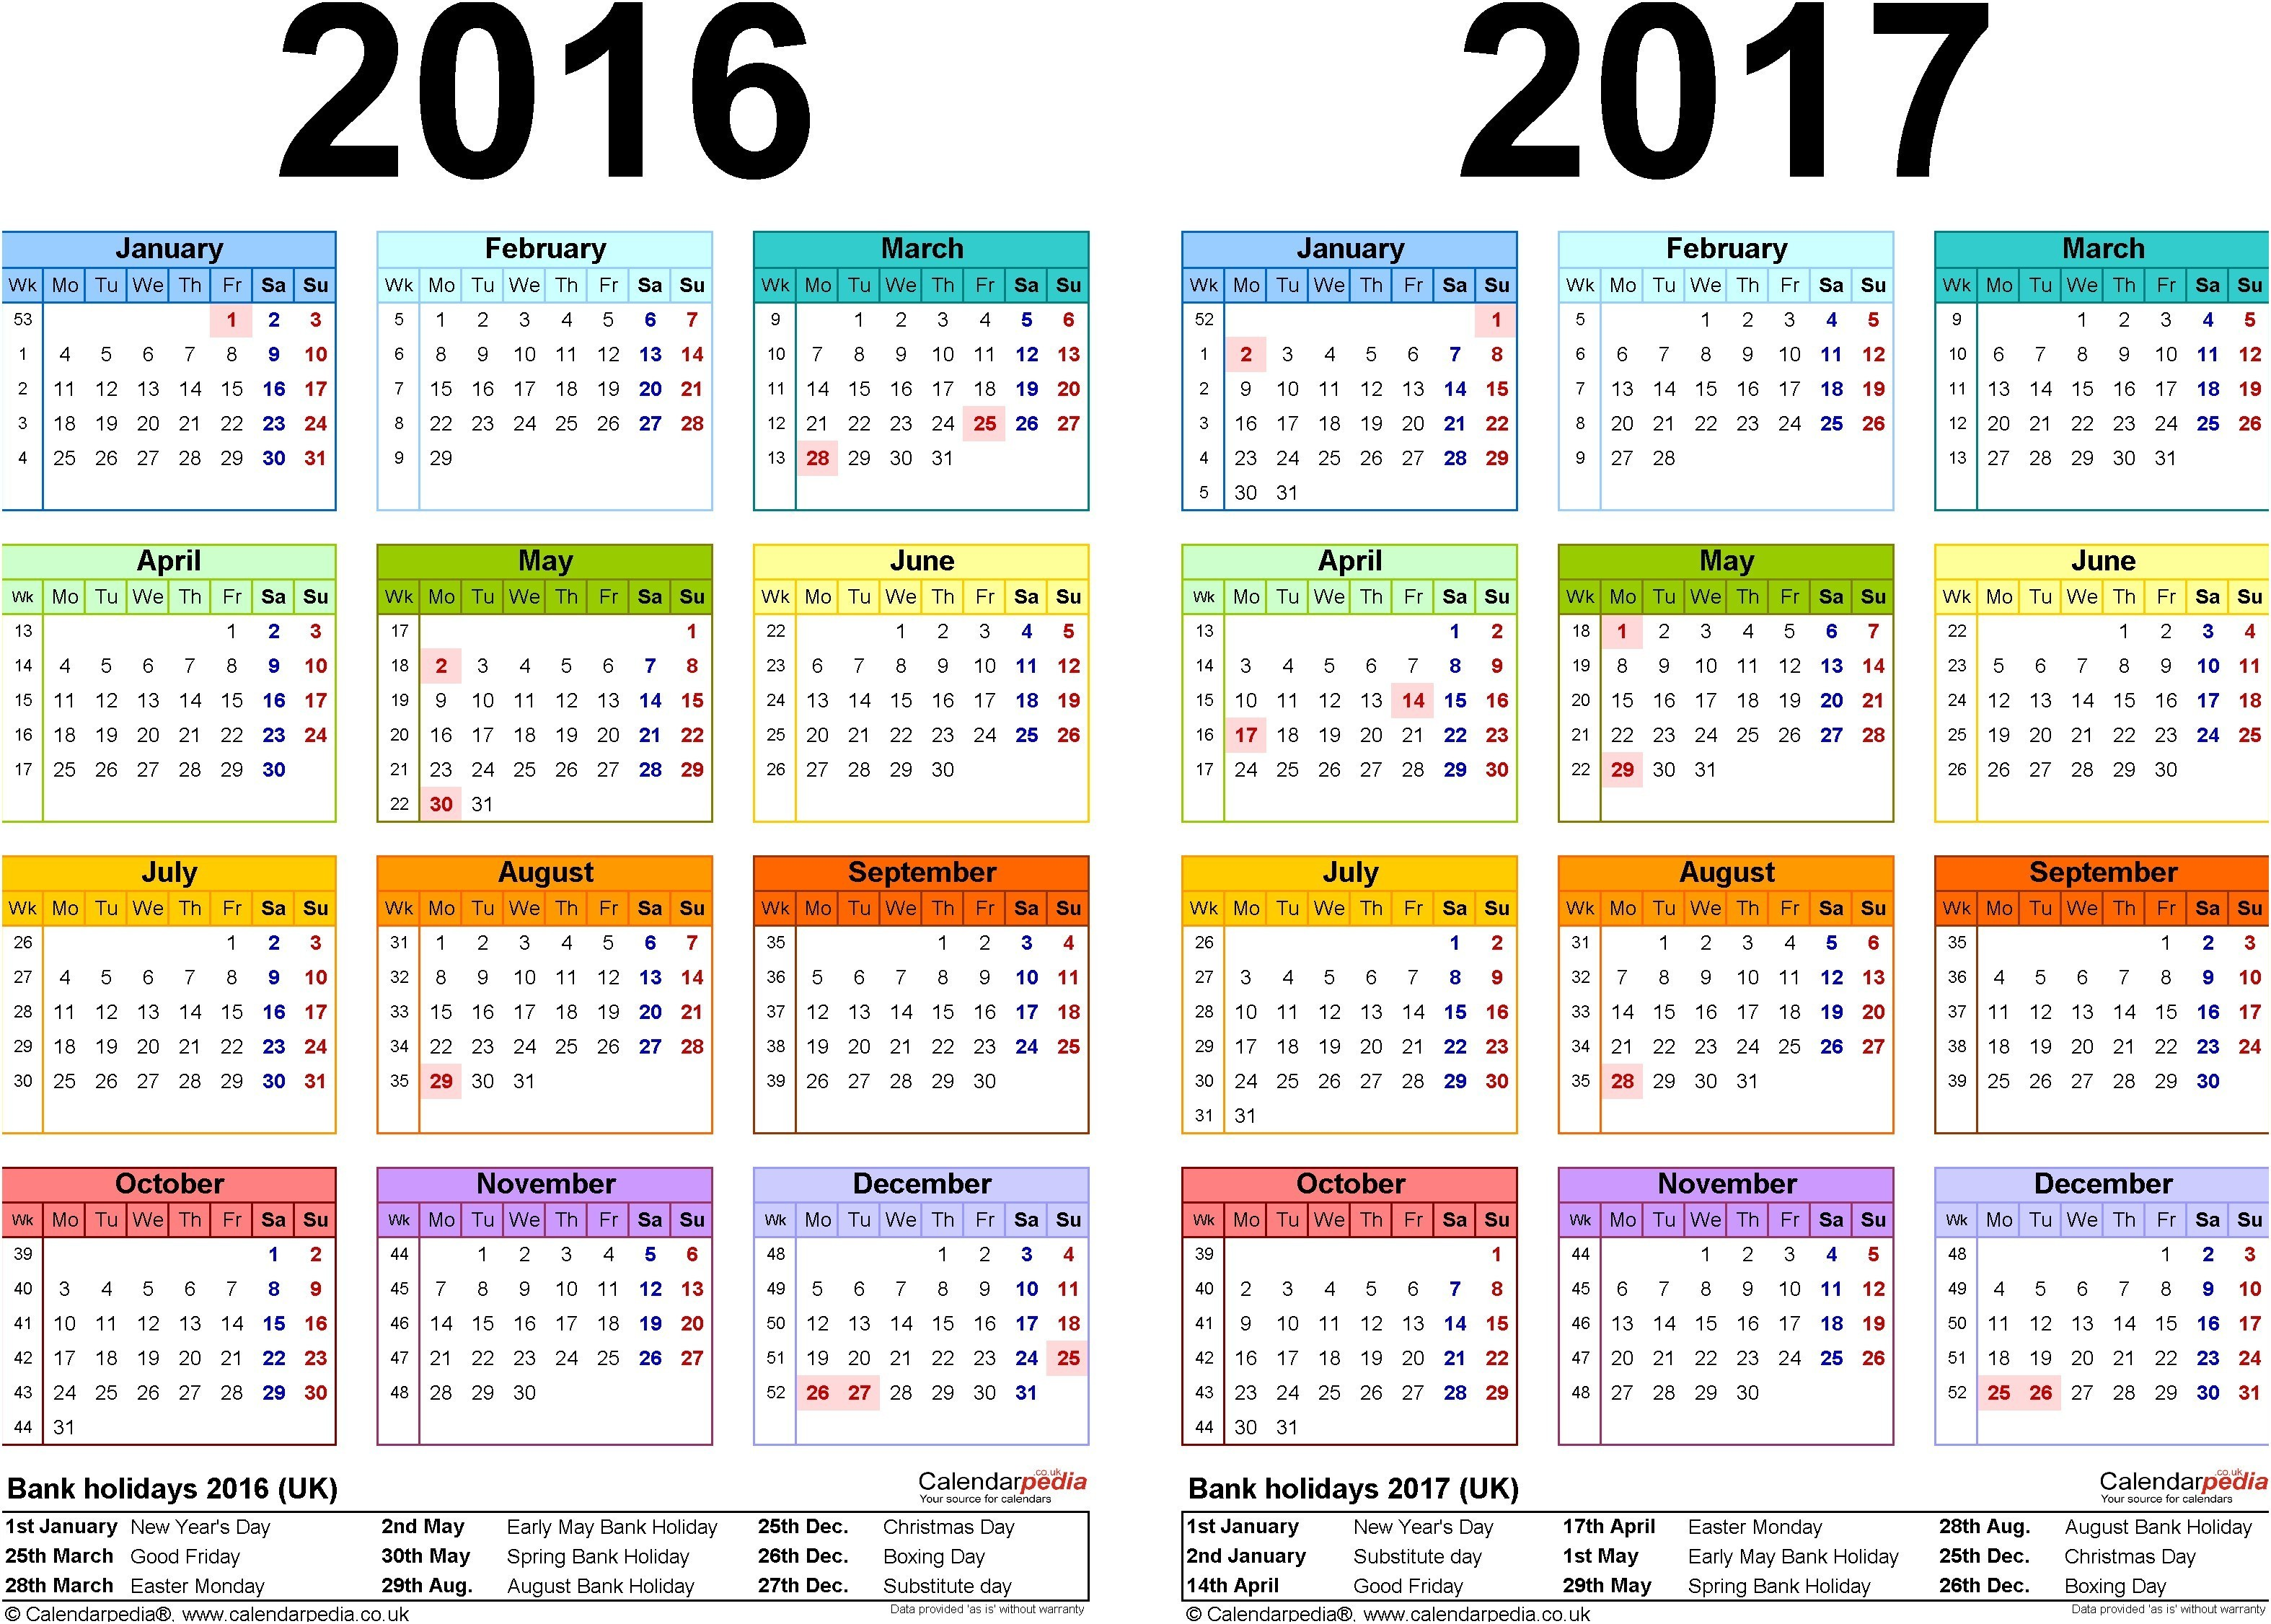 March 2018 Calendar Kalnirnay Más Populares Info Intended for Feb 2019 Calendar Kalnirnay Calendar Online 2019 Of March 2018 Calendar Kalnirnay Más Recientes Pin by 4khd On August 2018 Calendar Printable